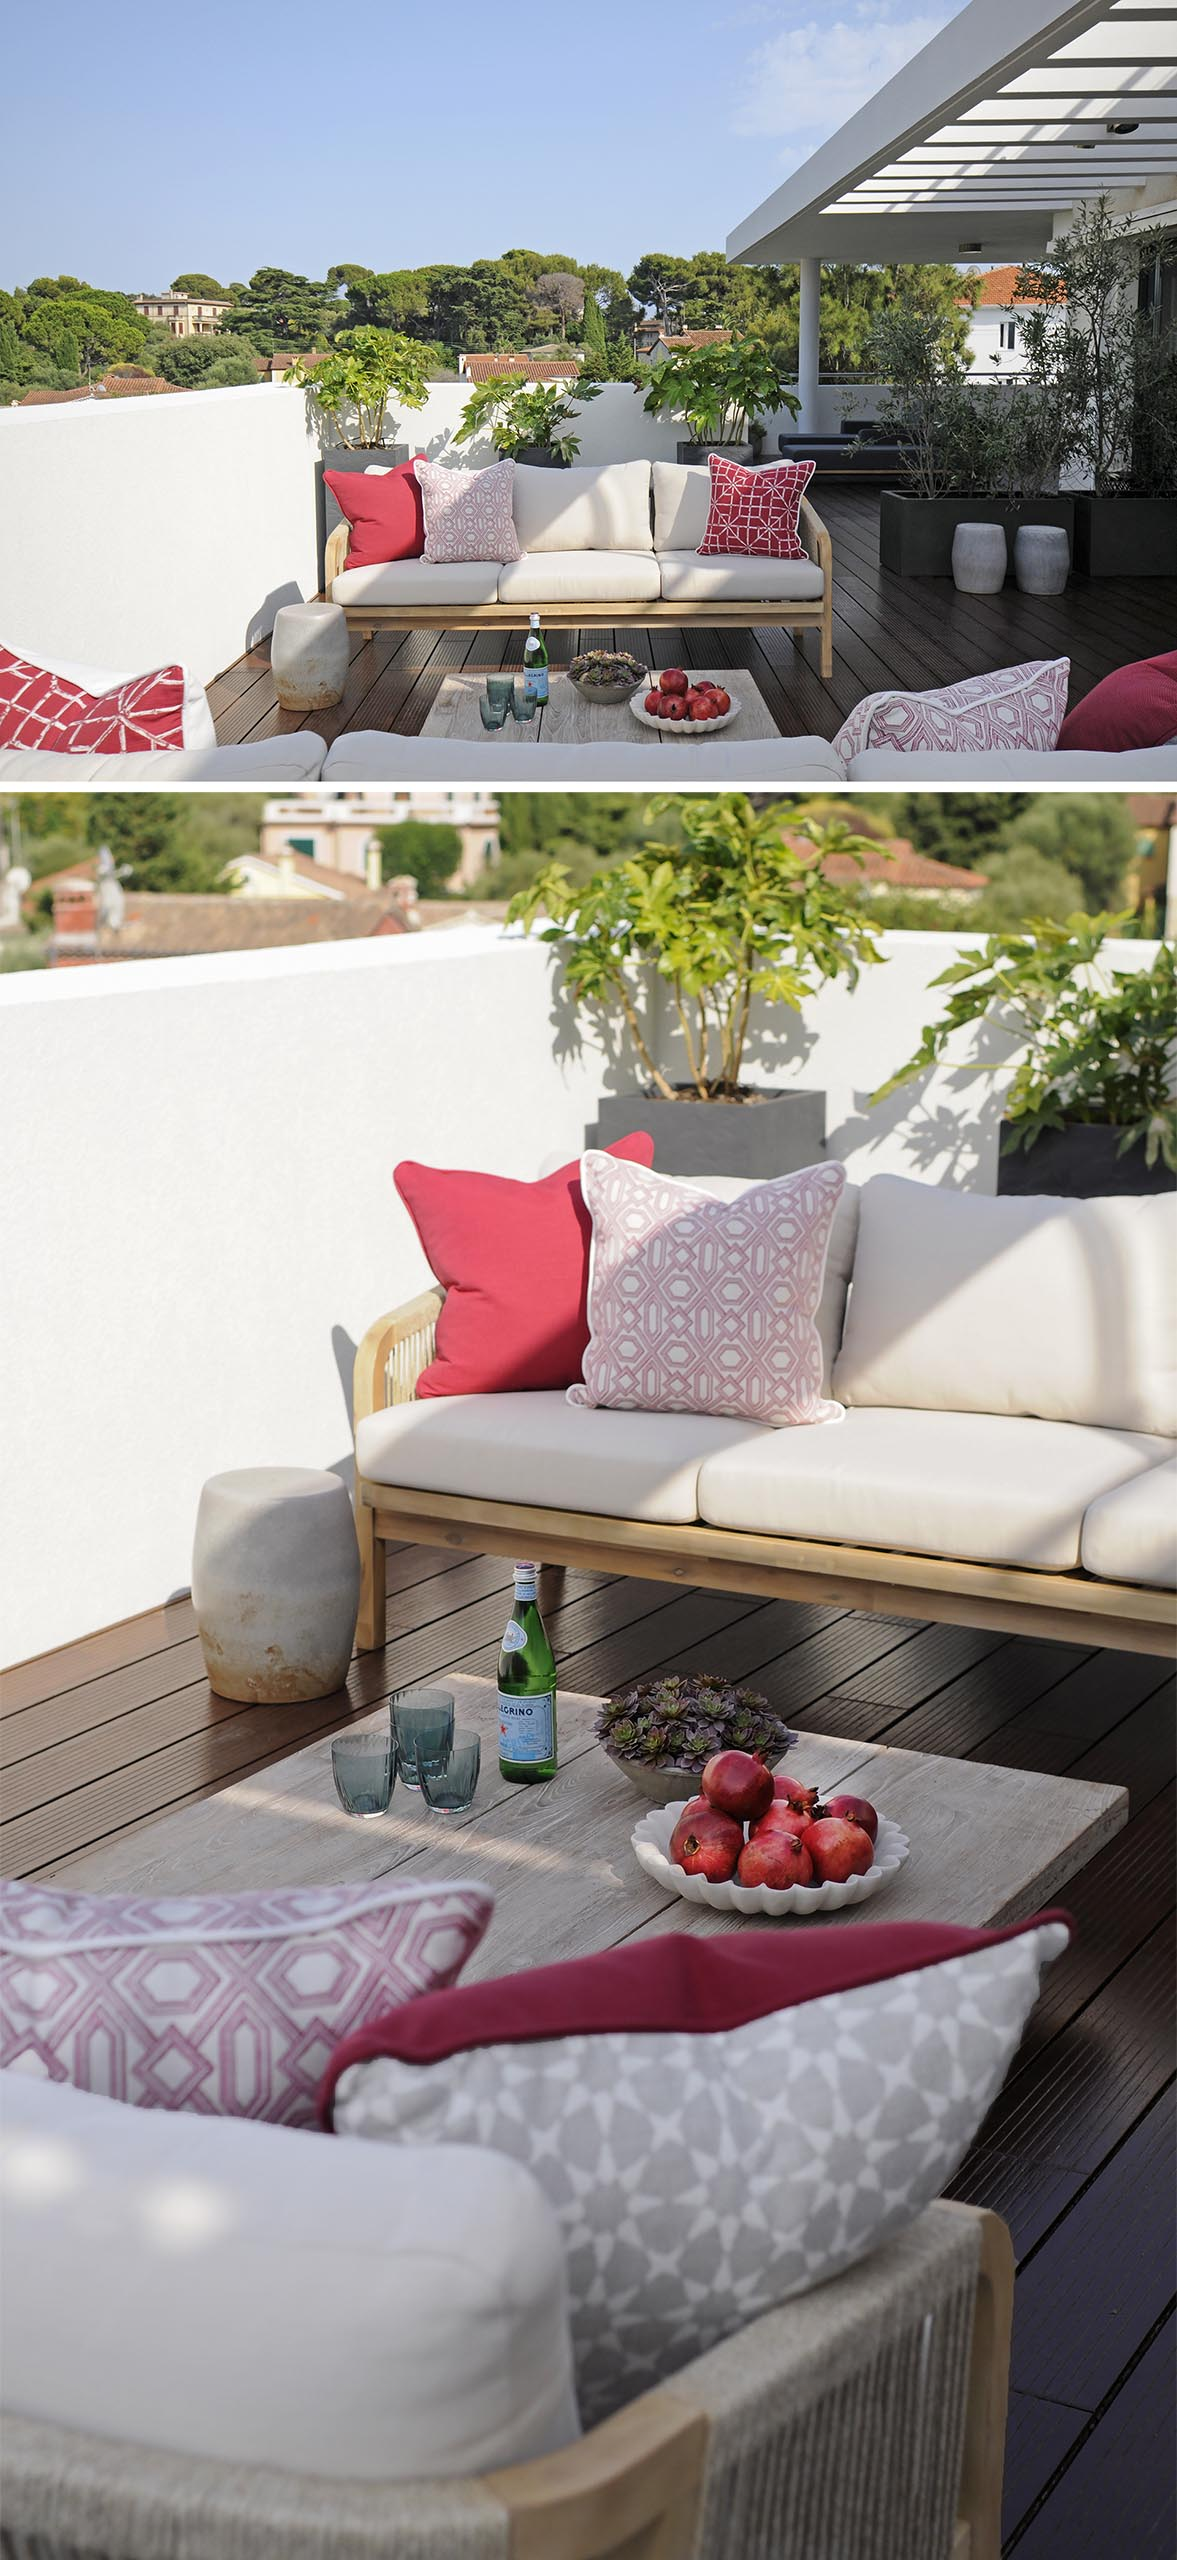 An outdoor terrace with sofas and red cushion accents.